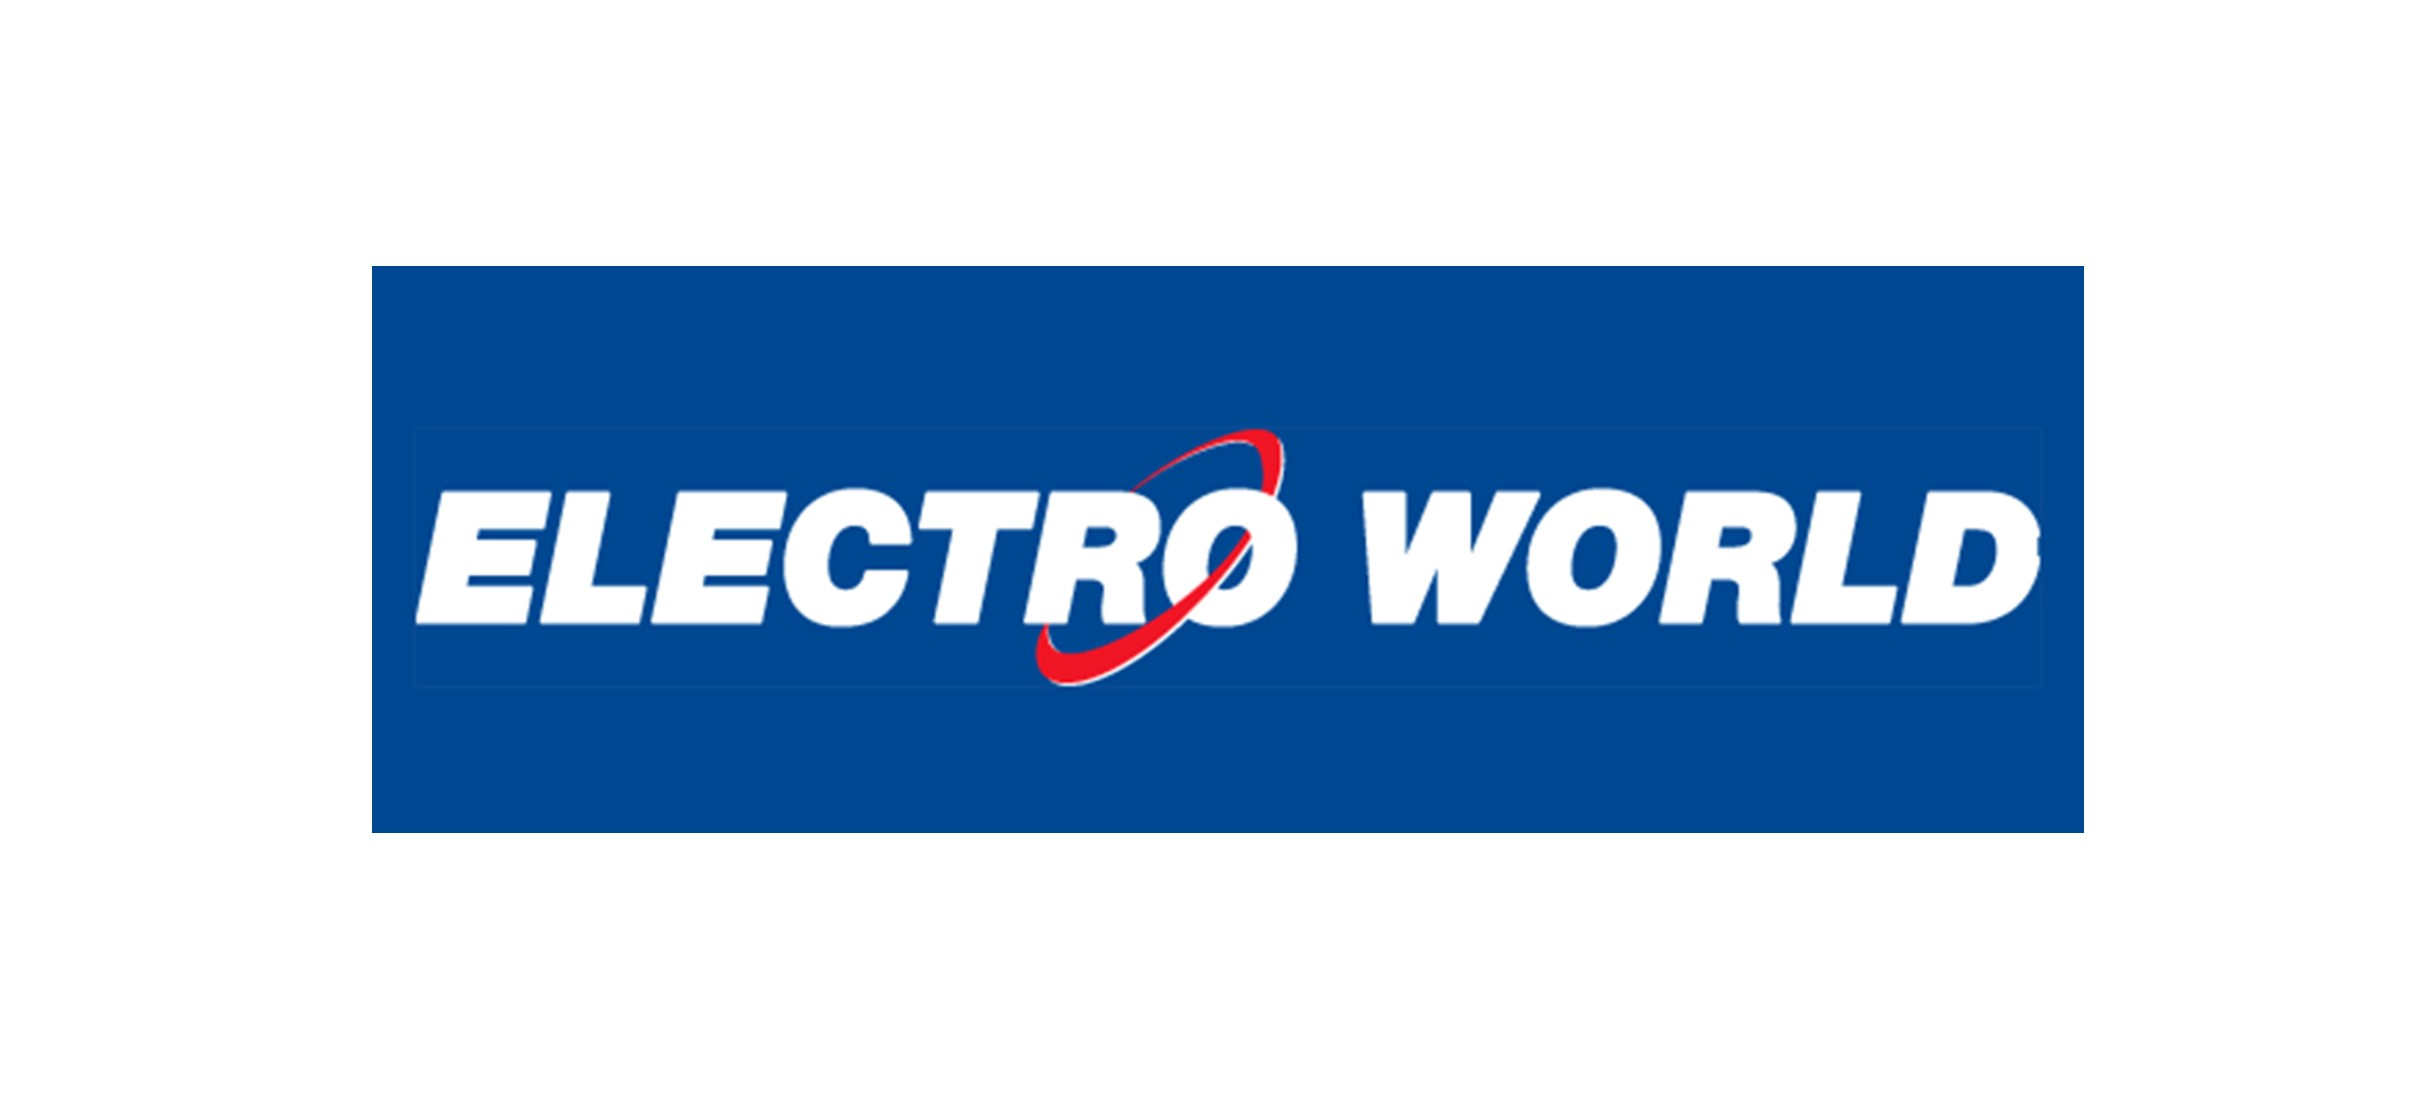 channel_1529412525electroworld_final.jpg